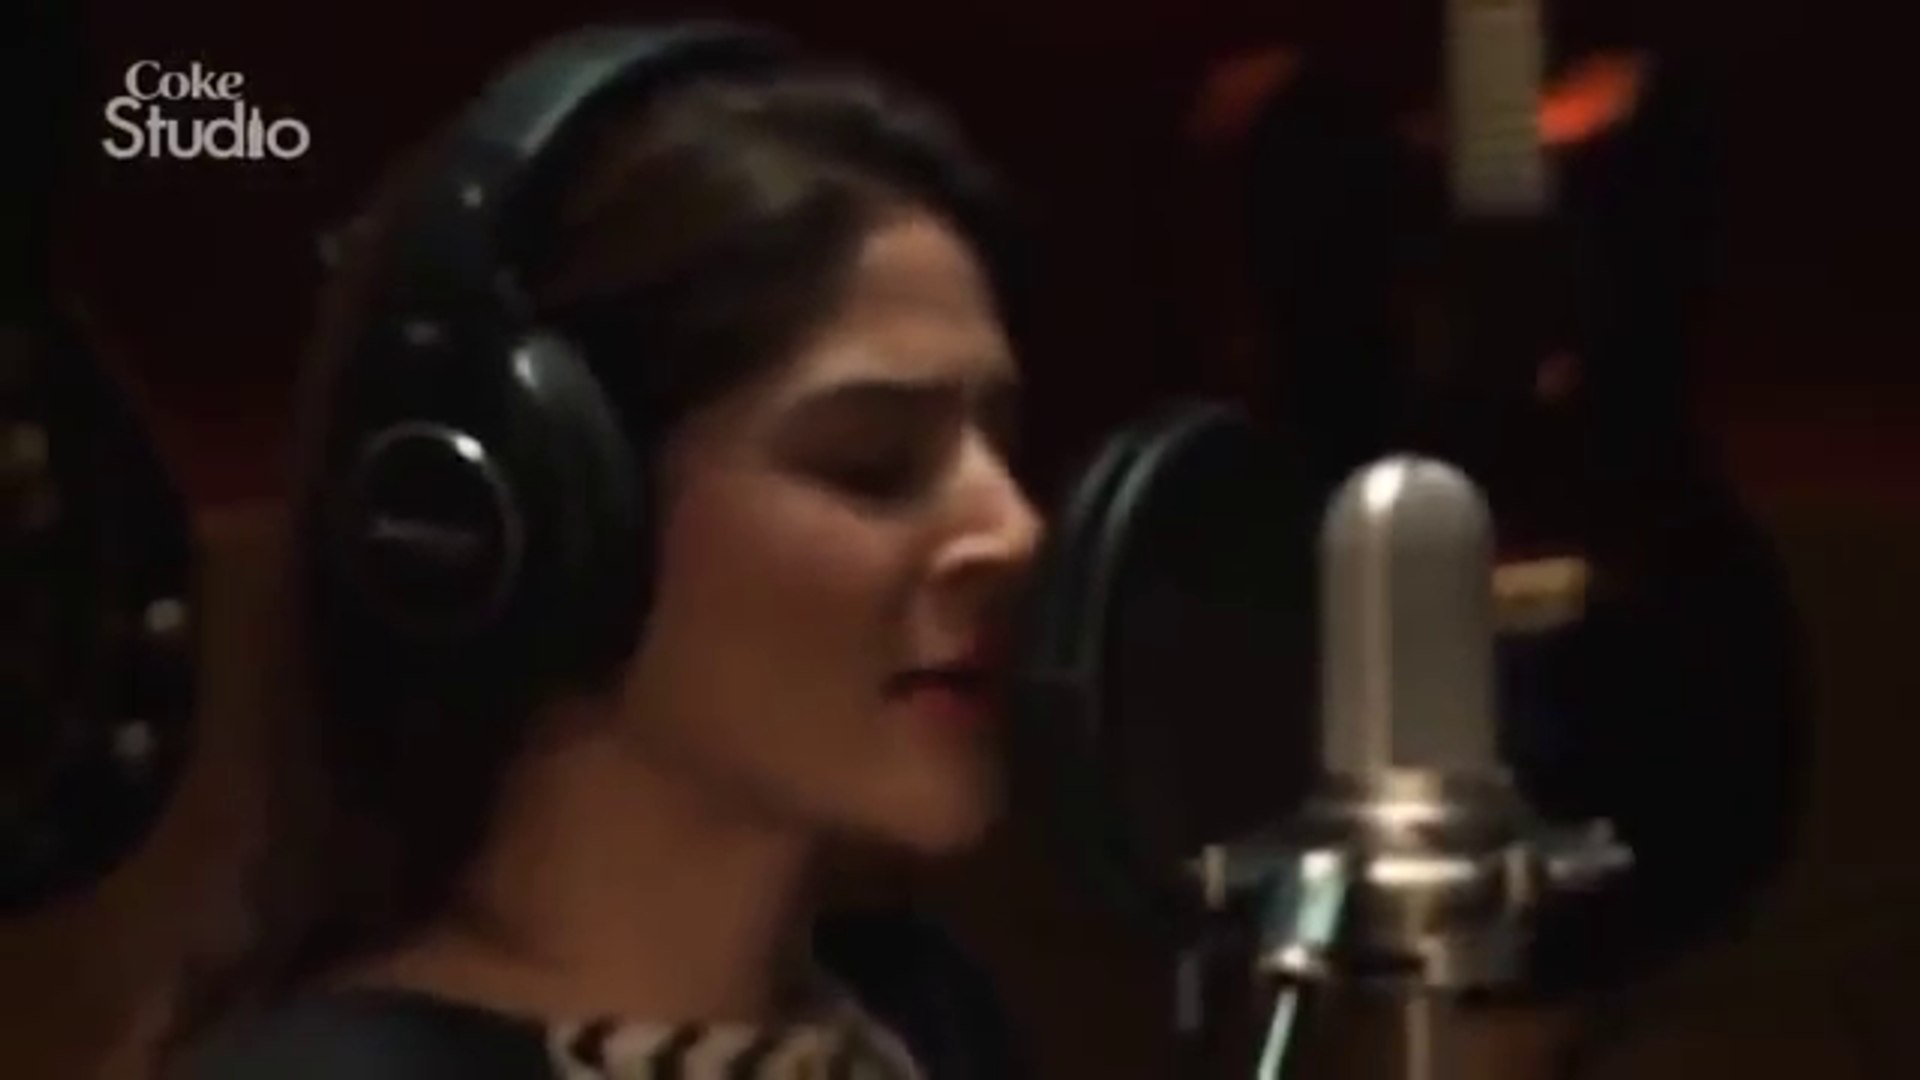 ayesha omer coke studio laage re nain mp3